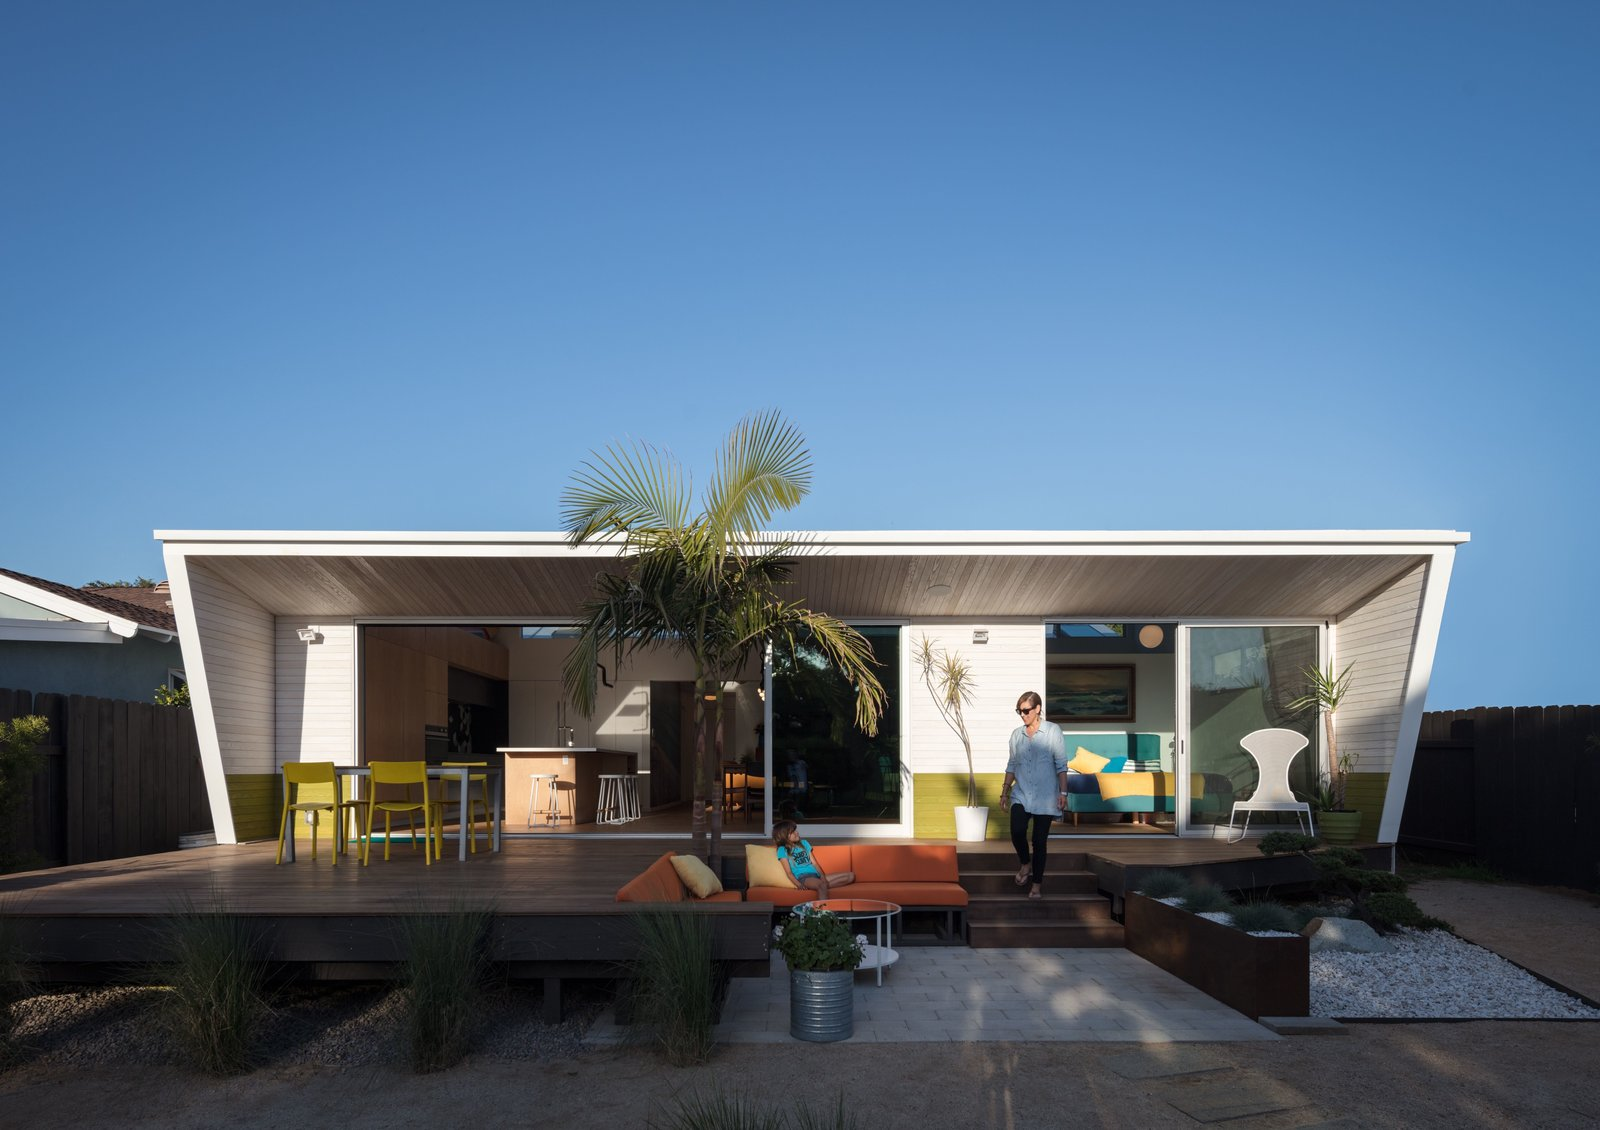 New Angled Cube rear addition  The Beach Lab by Surfside Projects